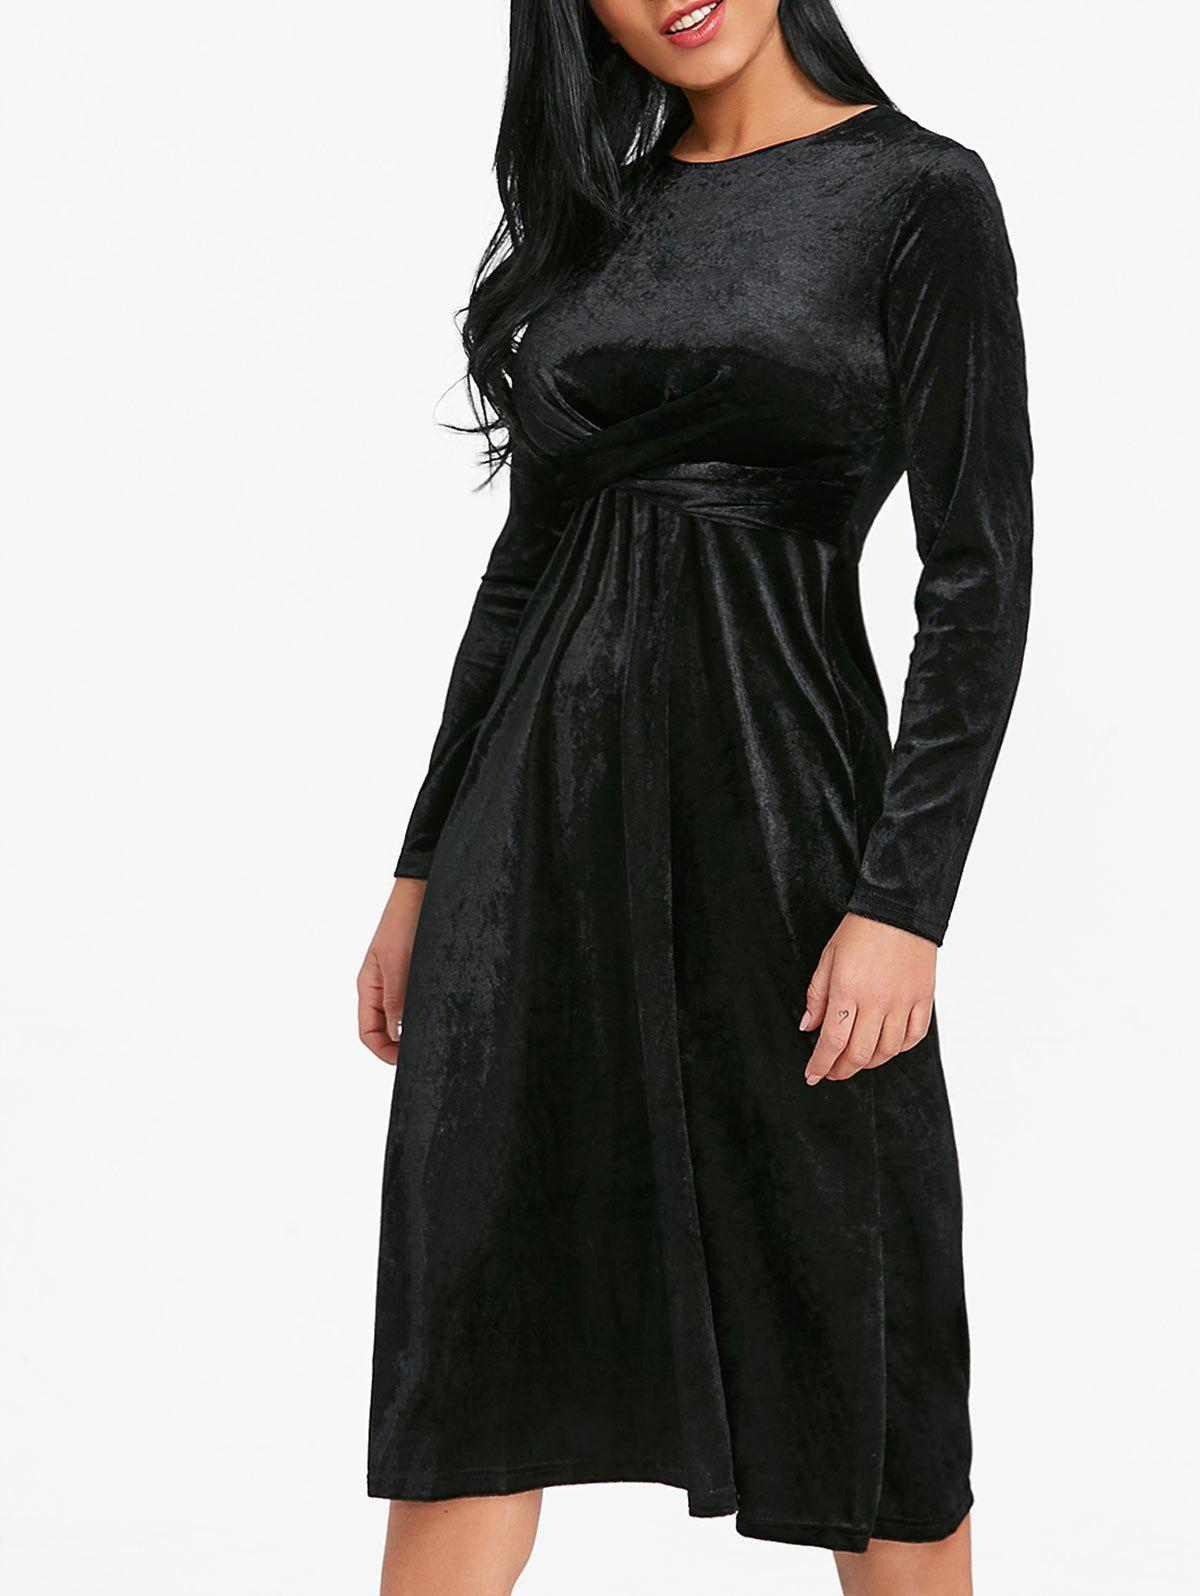 Twist Front Velvet Flare Dress - BLACK S